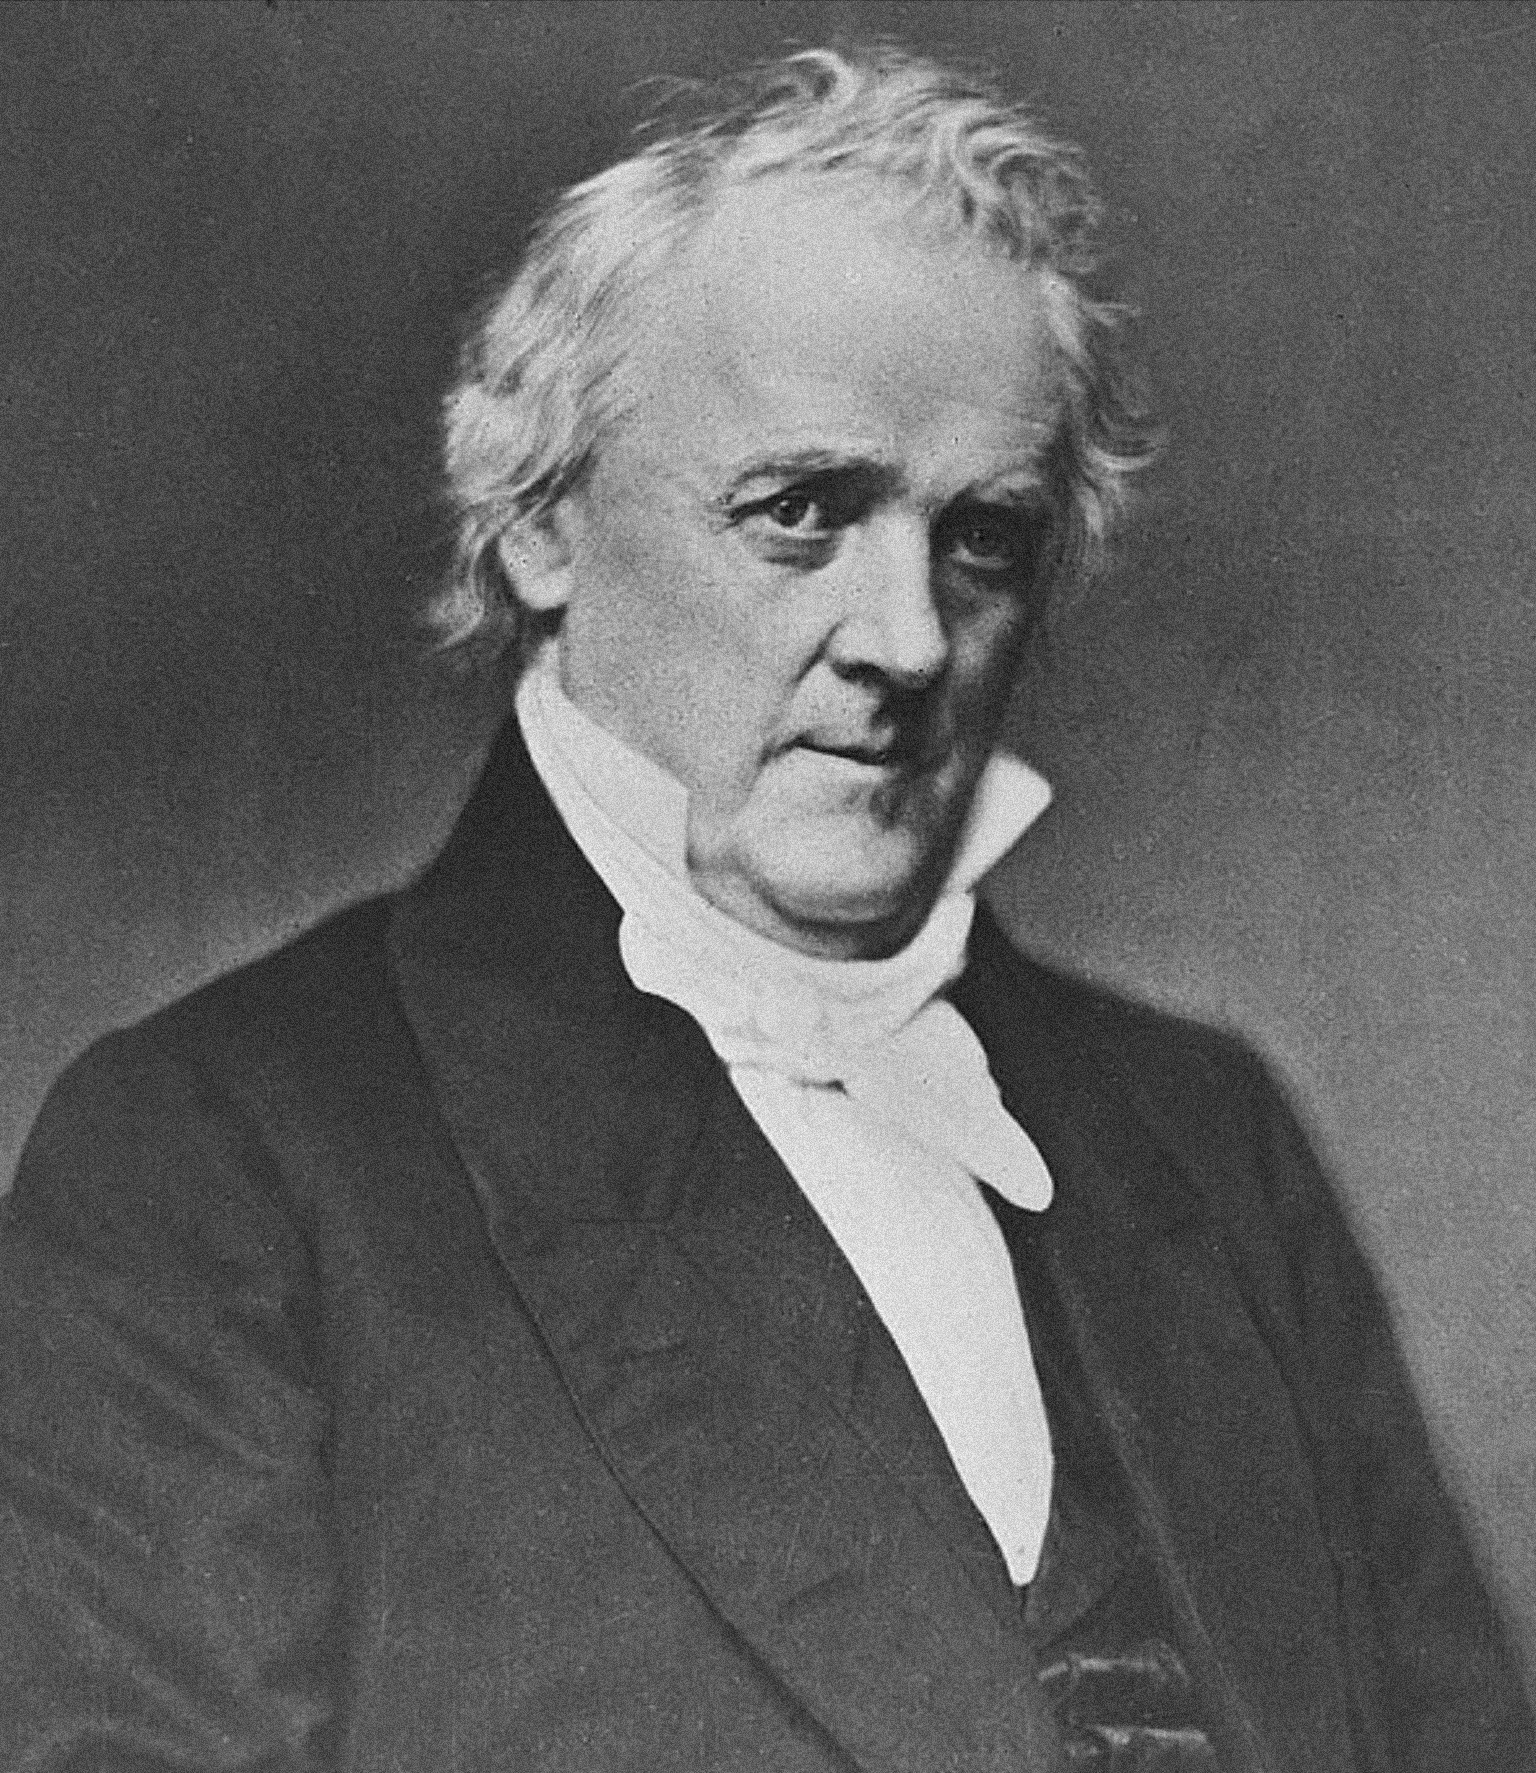 Description James Buchanan.jpg